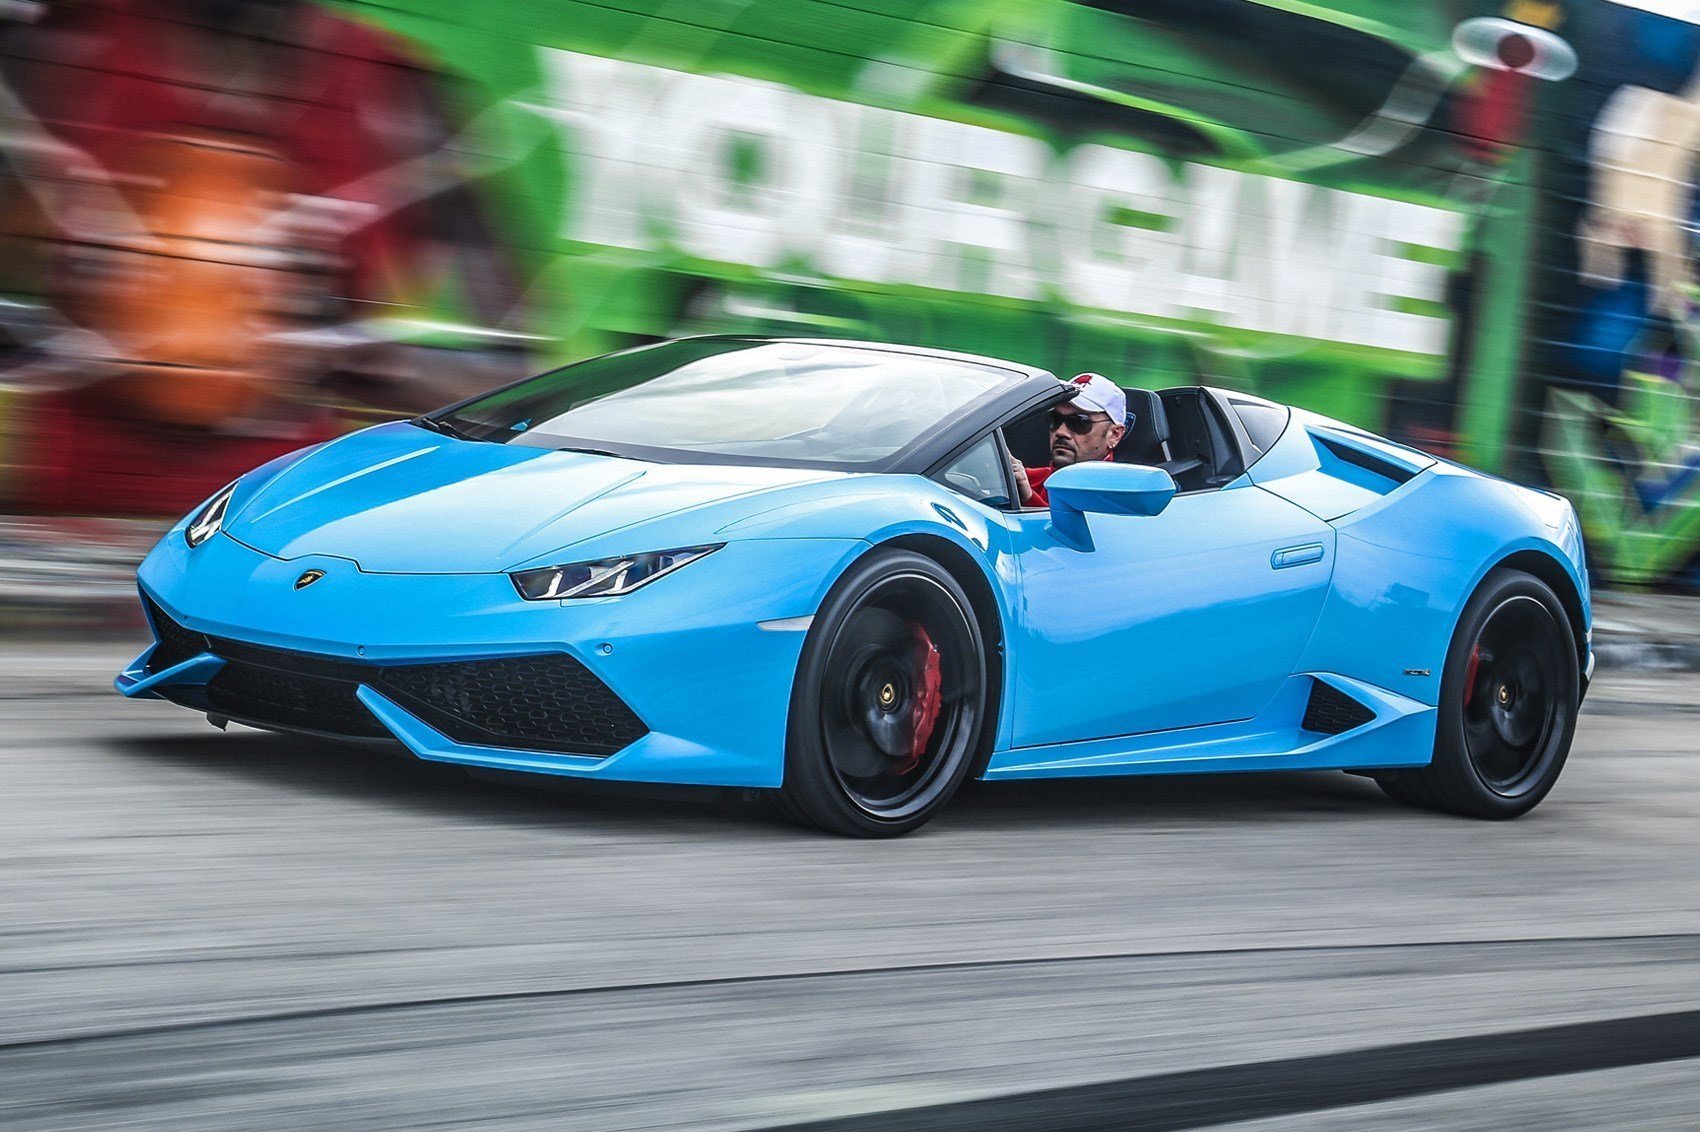 Latest Lamborghini Huracan Lp610 4 Spyder 2016 Review By Car Free Download